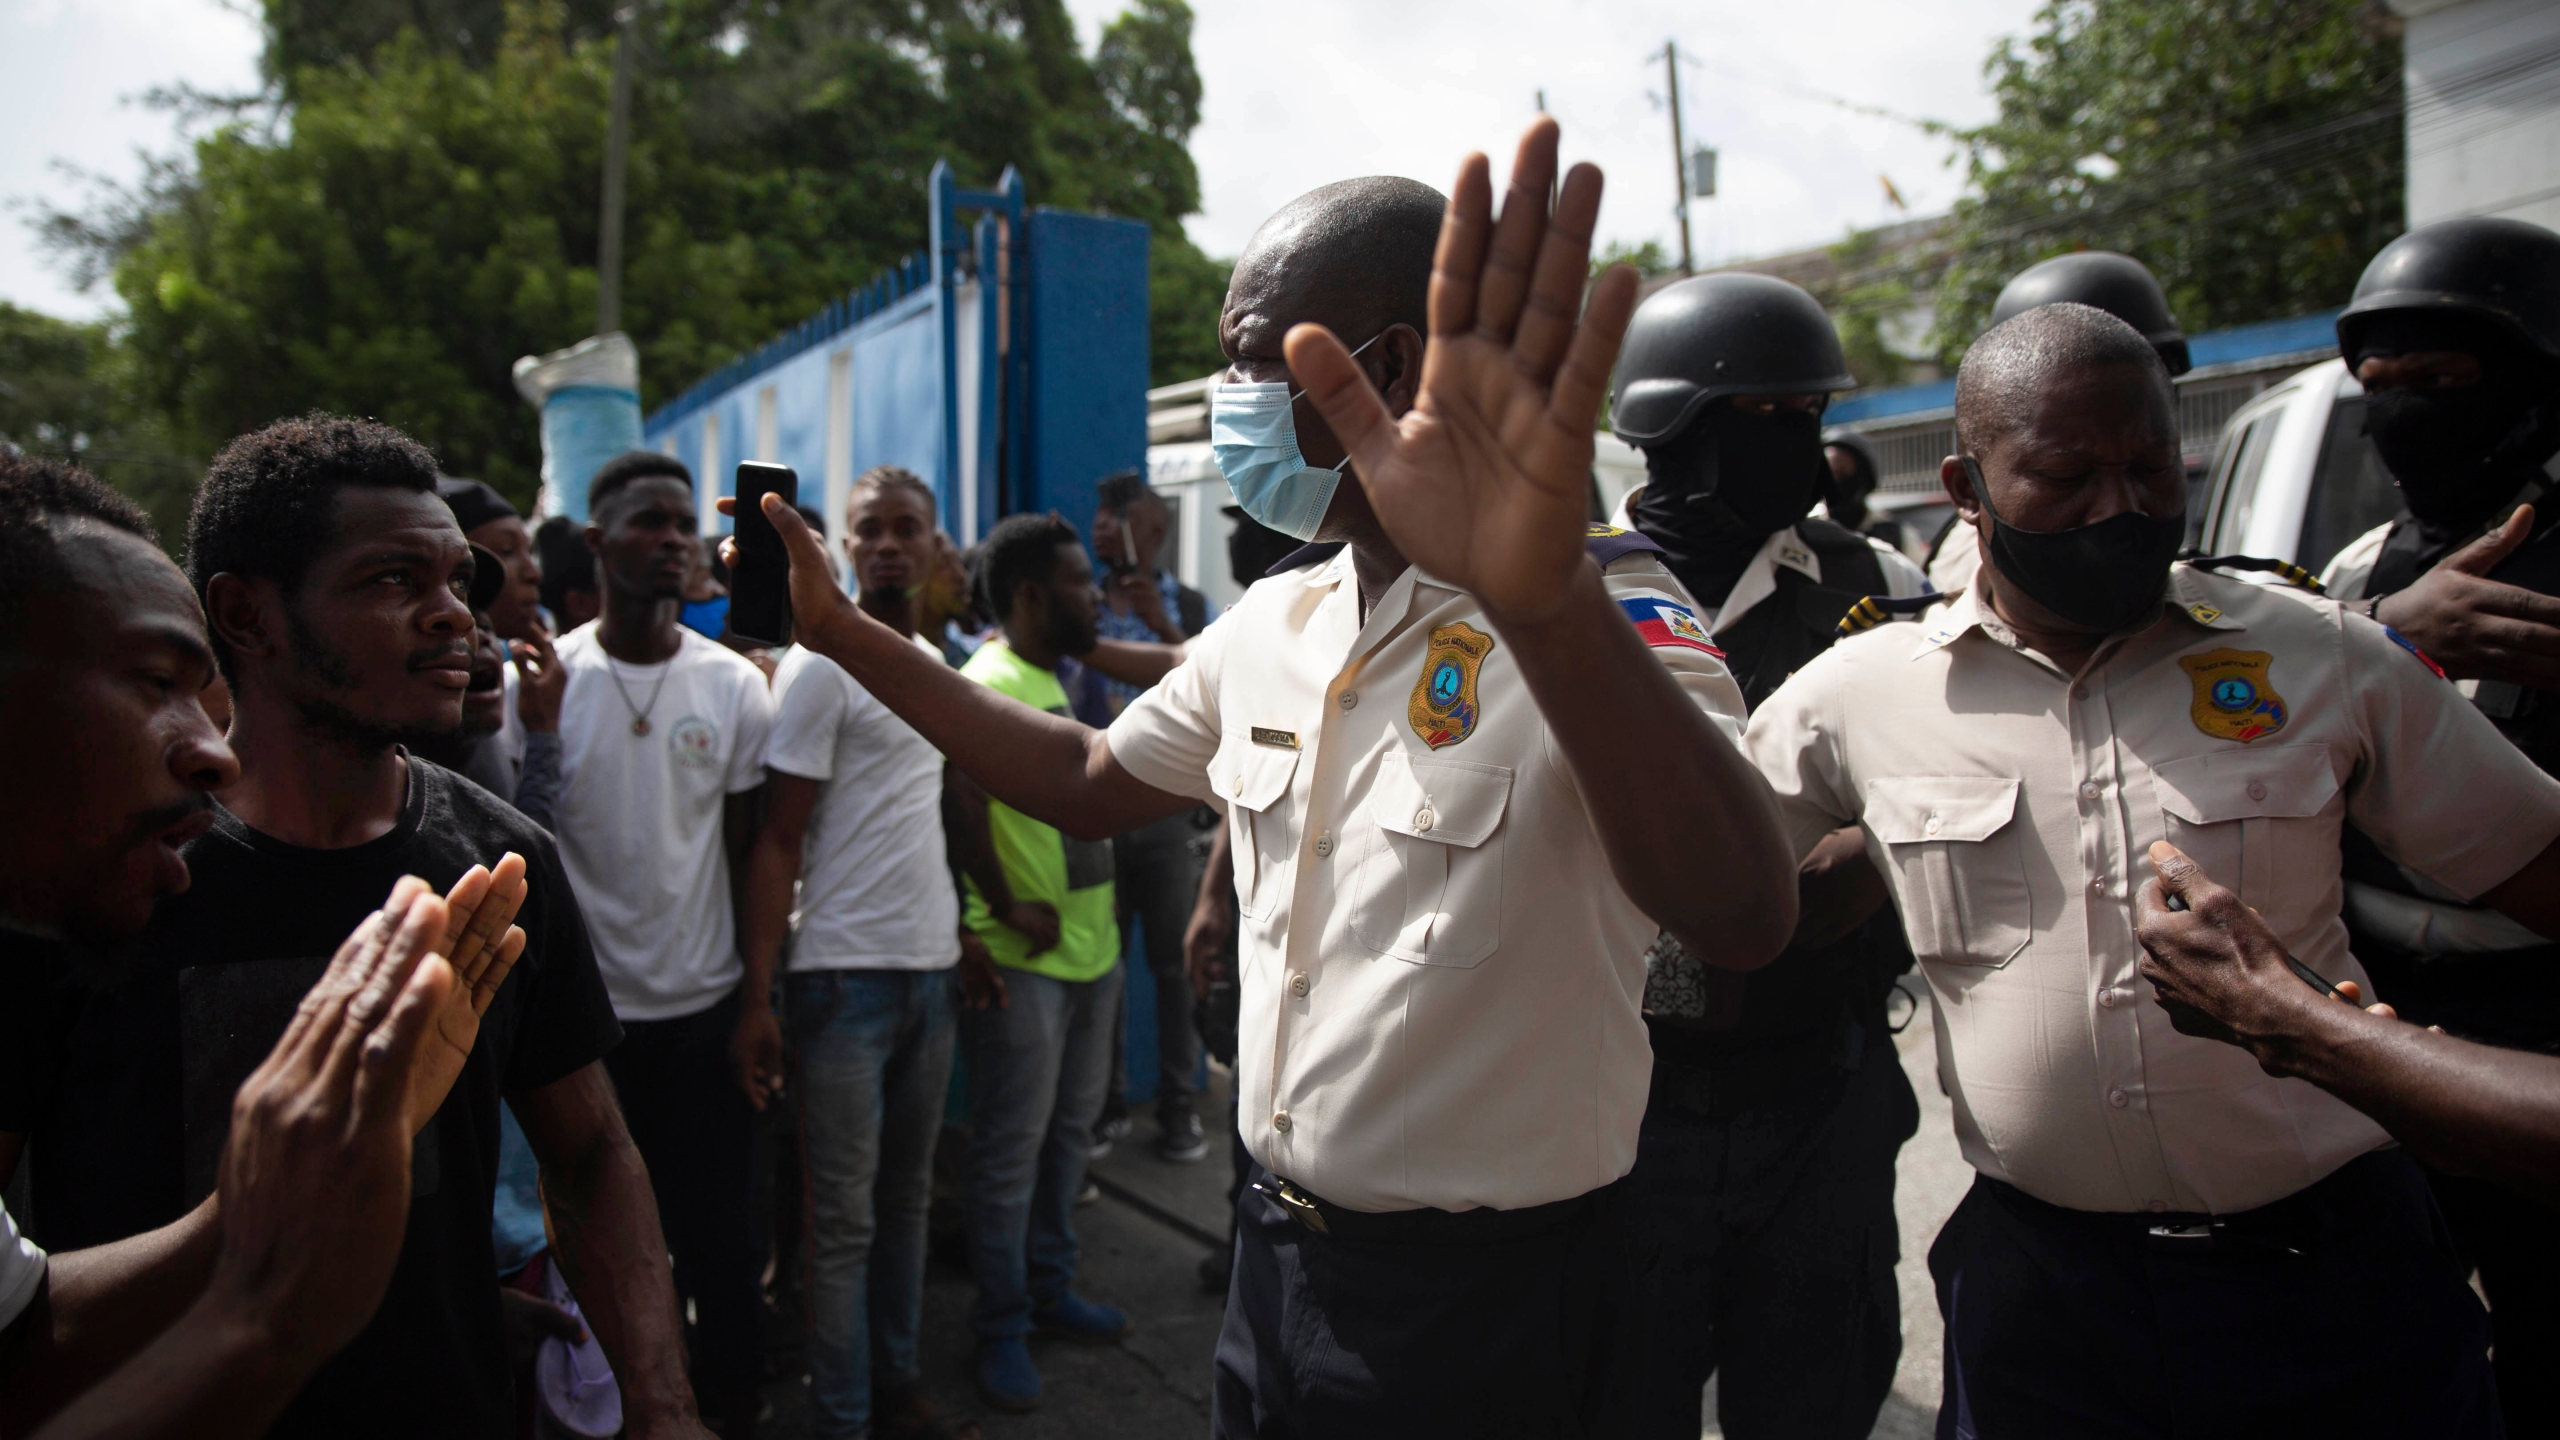 People pressure police to hand over two men who were arrested and the bodies of two men who were brought in by police after they were killed by police, in order to burn them in retaliation for the assassination of Haitian President Jovenel Moïse, at a police station of Petion Ville in Port-au-Prince, Haiti, Thursday, July 8, 2021. According to National Police Director Leon Charles, the dead and detained are suspects in Moïse's July 7 assassination. (AP Photo/Joseph Odelyn)